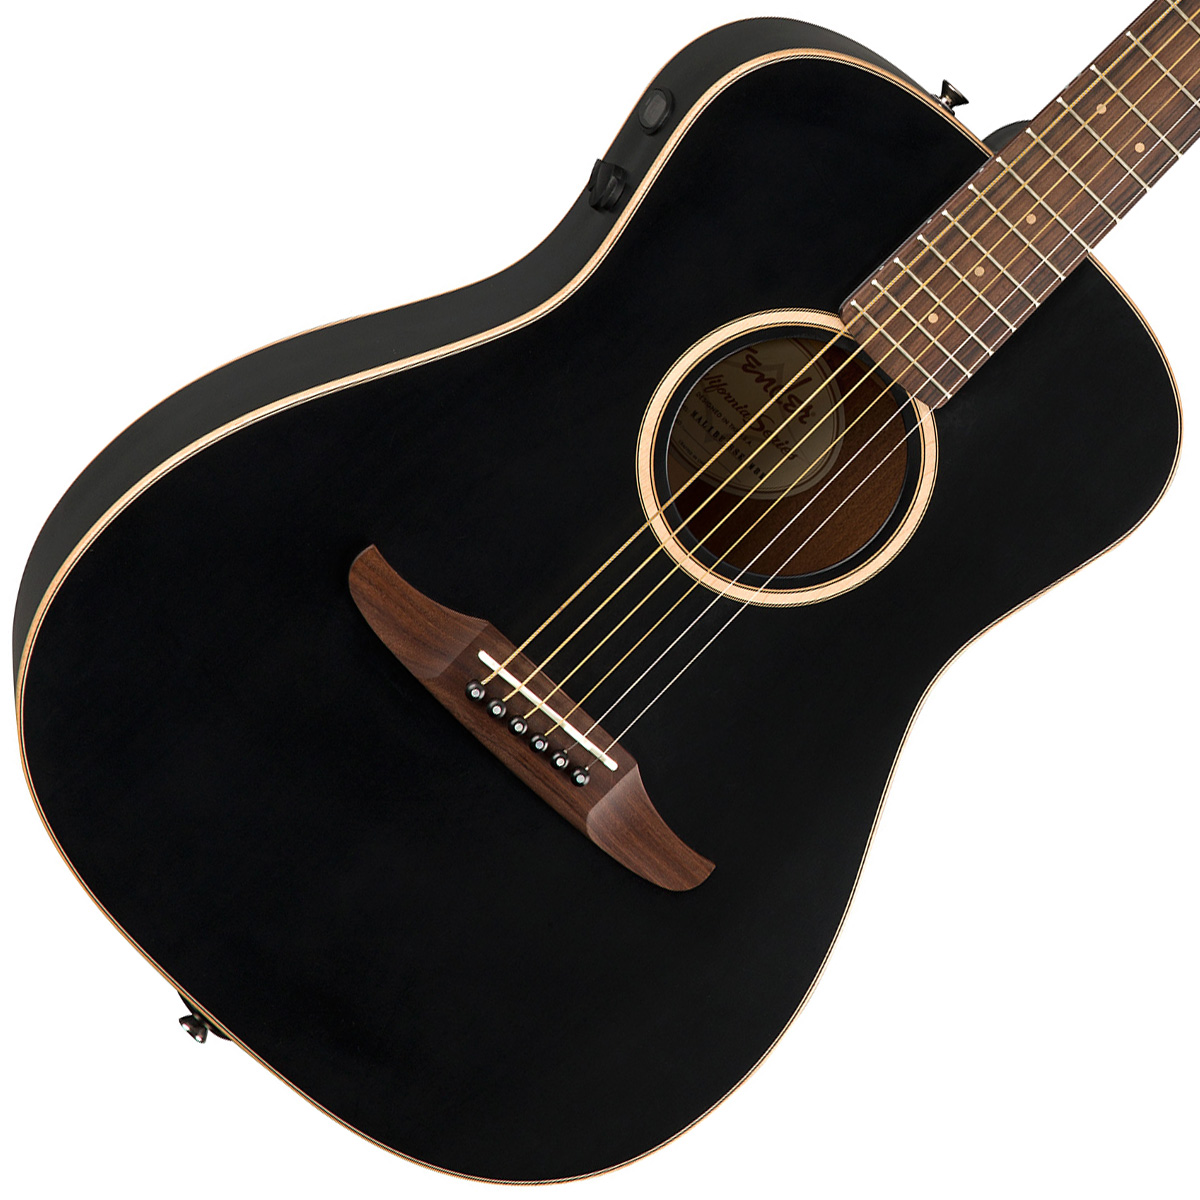 FENDER / MALIBU SPECIAL Matte Black (MBK) 【CALIFORNIA SERIES】フェンダー アコースティックギター【YRK】